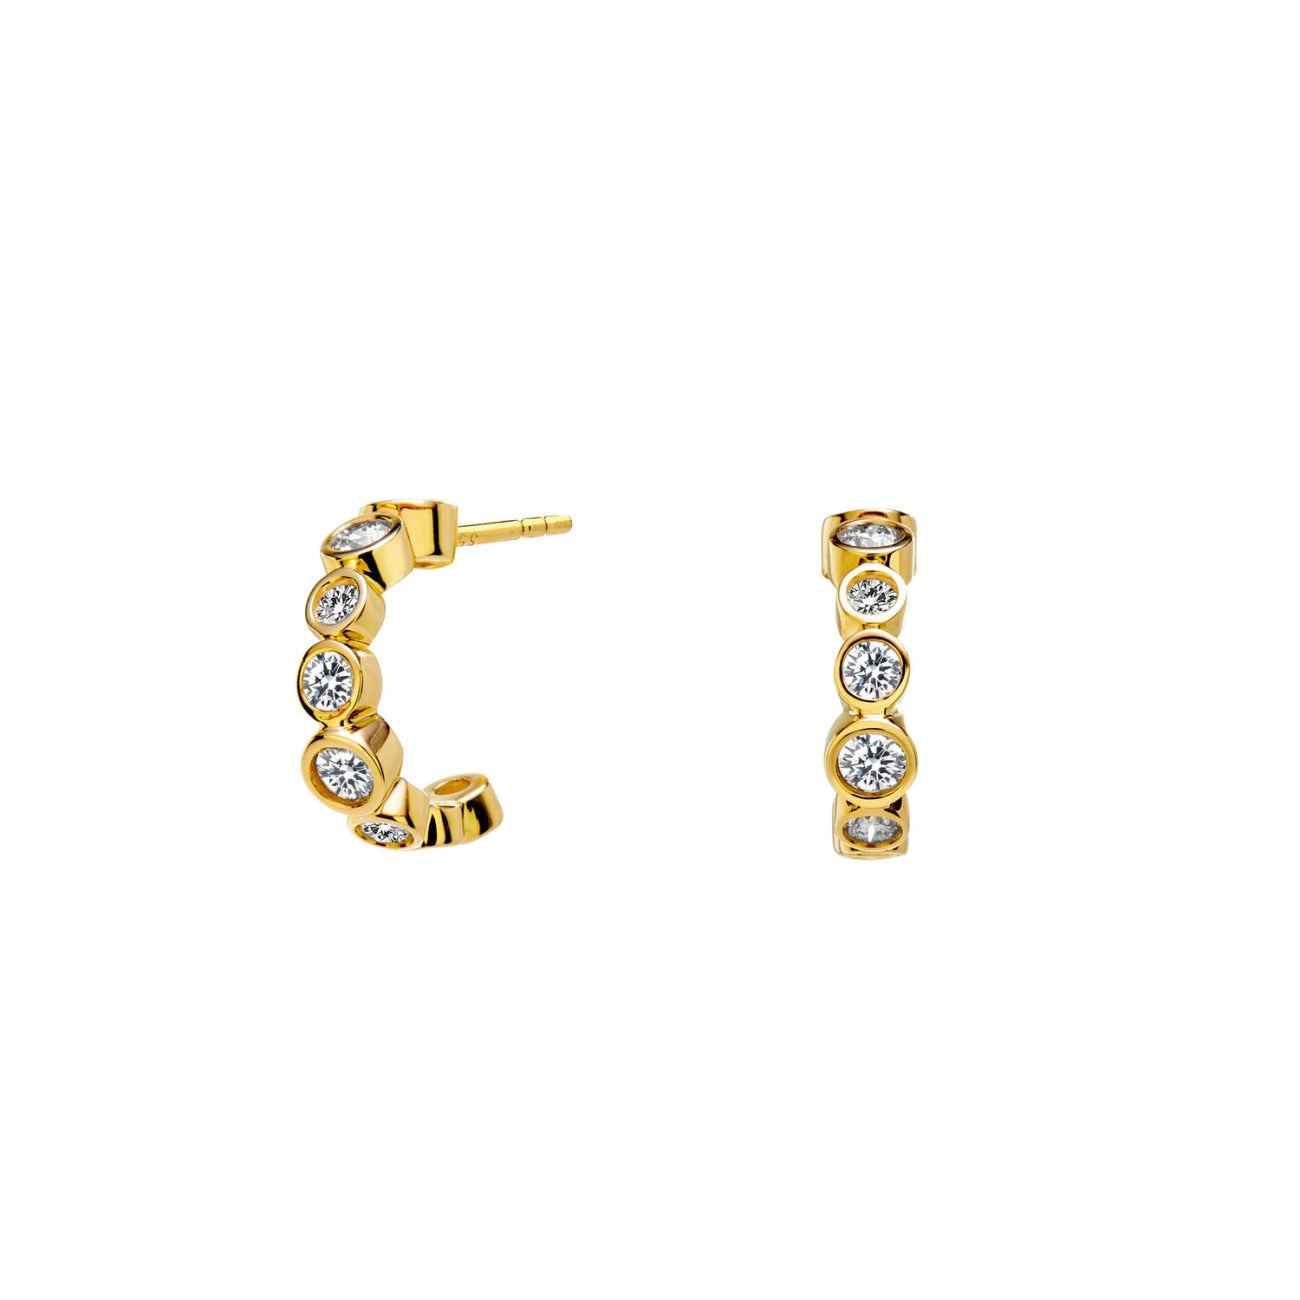 Syna Jewelry - Syna Mini Hoop Champagne Diamond Earrings 18k | Manfredi Jewels